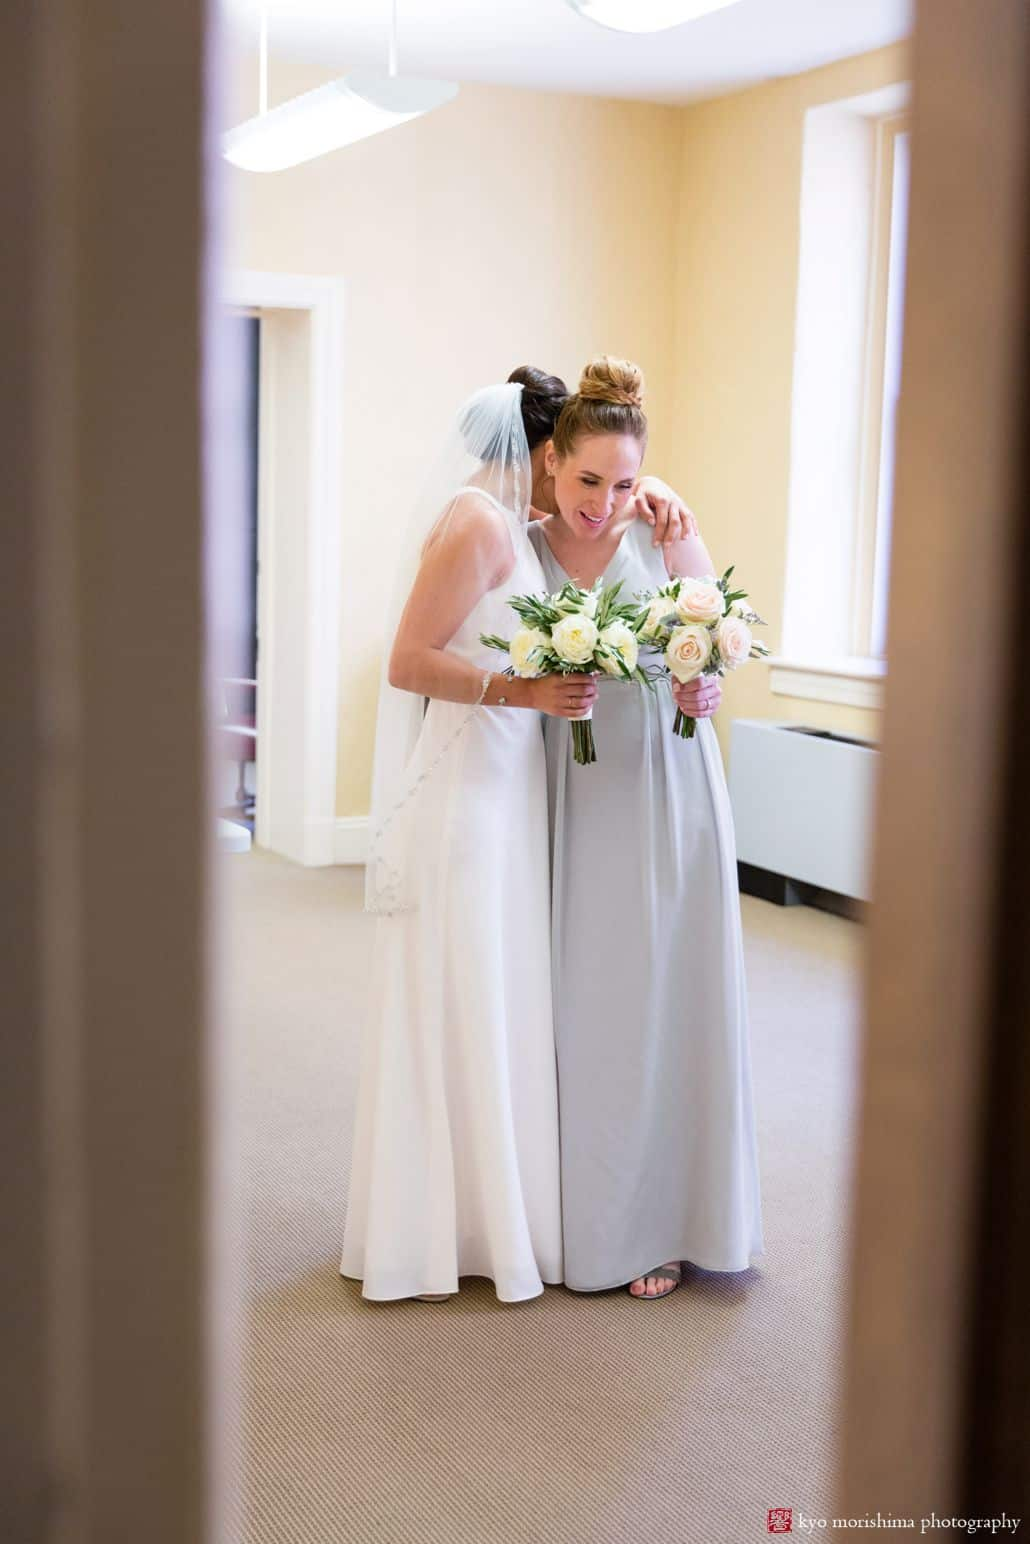 Bride and bridesmaid hug before wedding ceremony at Hunterdon County courthouse. BHLDN bridal gown, The Pod Shop flowers, New Hope, intimate wedding, PA wedding photographer.